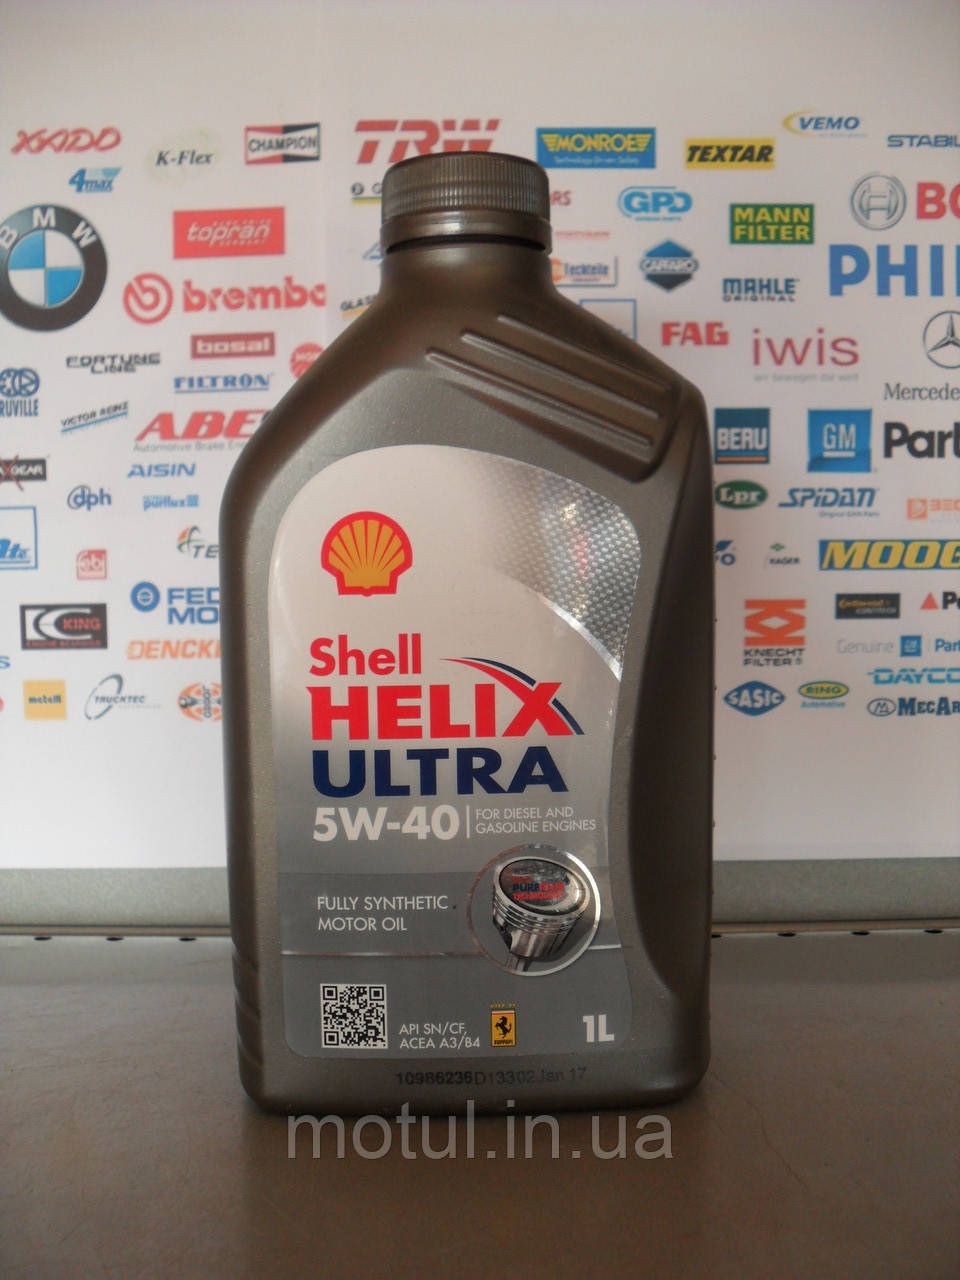 Моторне масло Shell helix hx8 5w-40